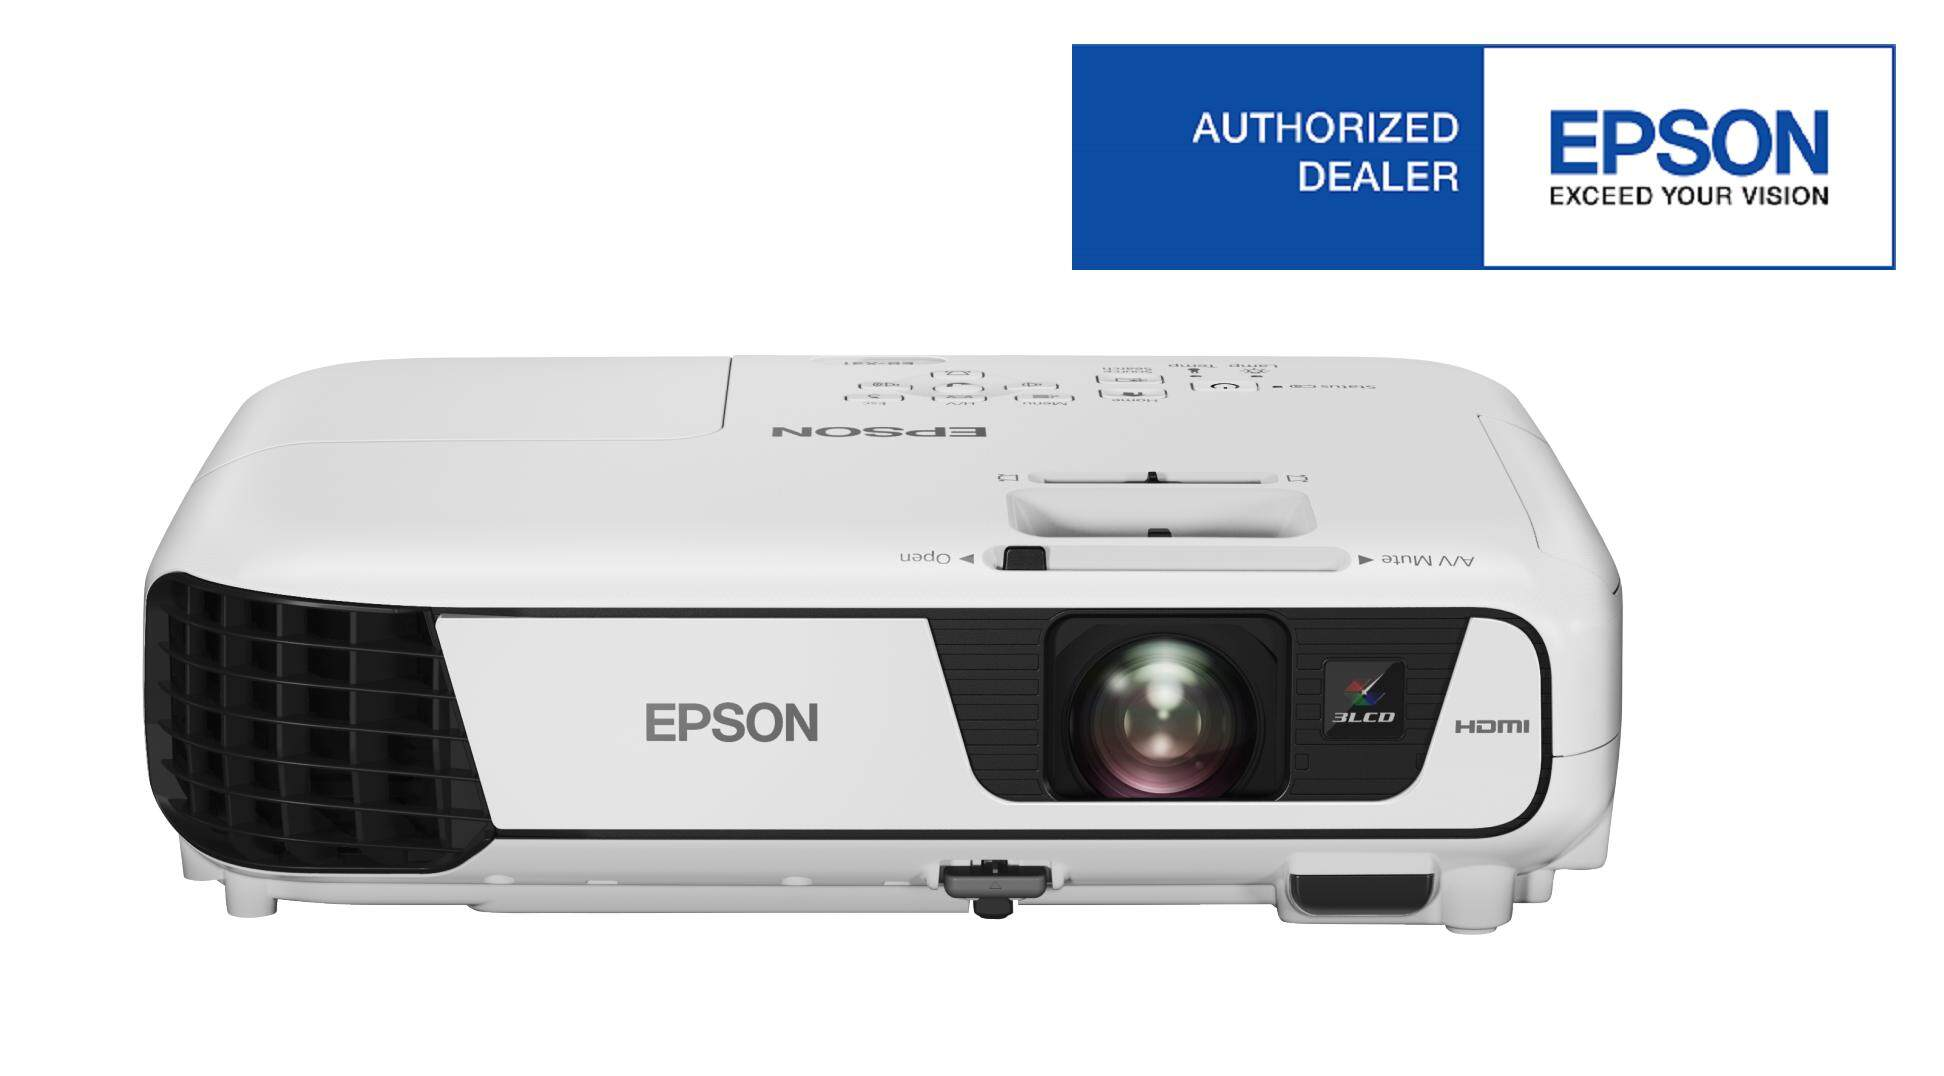 Epson Video Projectors Price In Malaysia Best Projector Eh Tw570 Home Theatre Eb X31 Versatile 3lcd Technology Xga